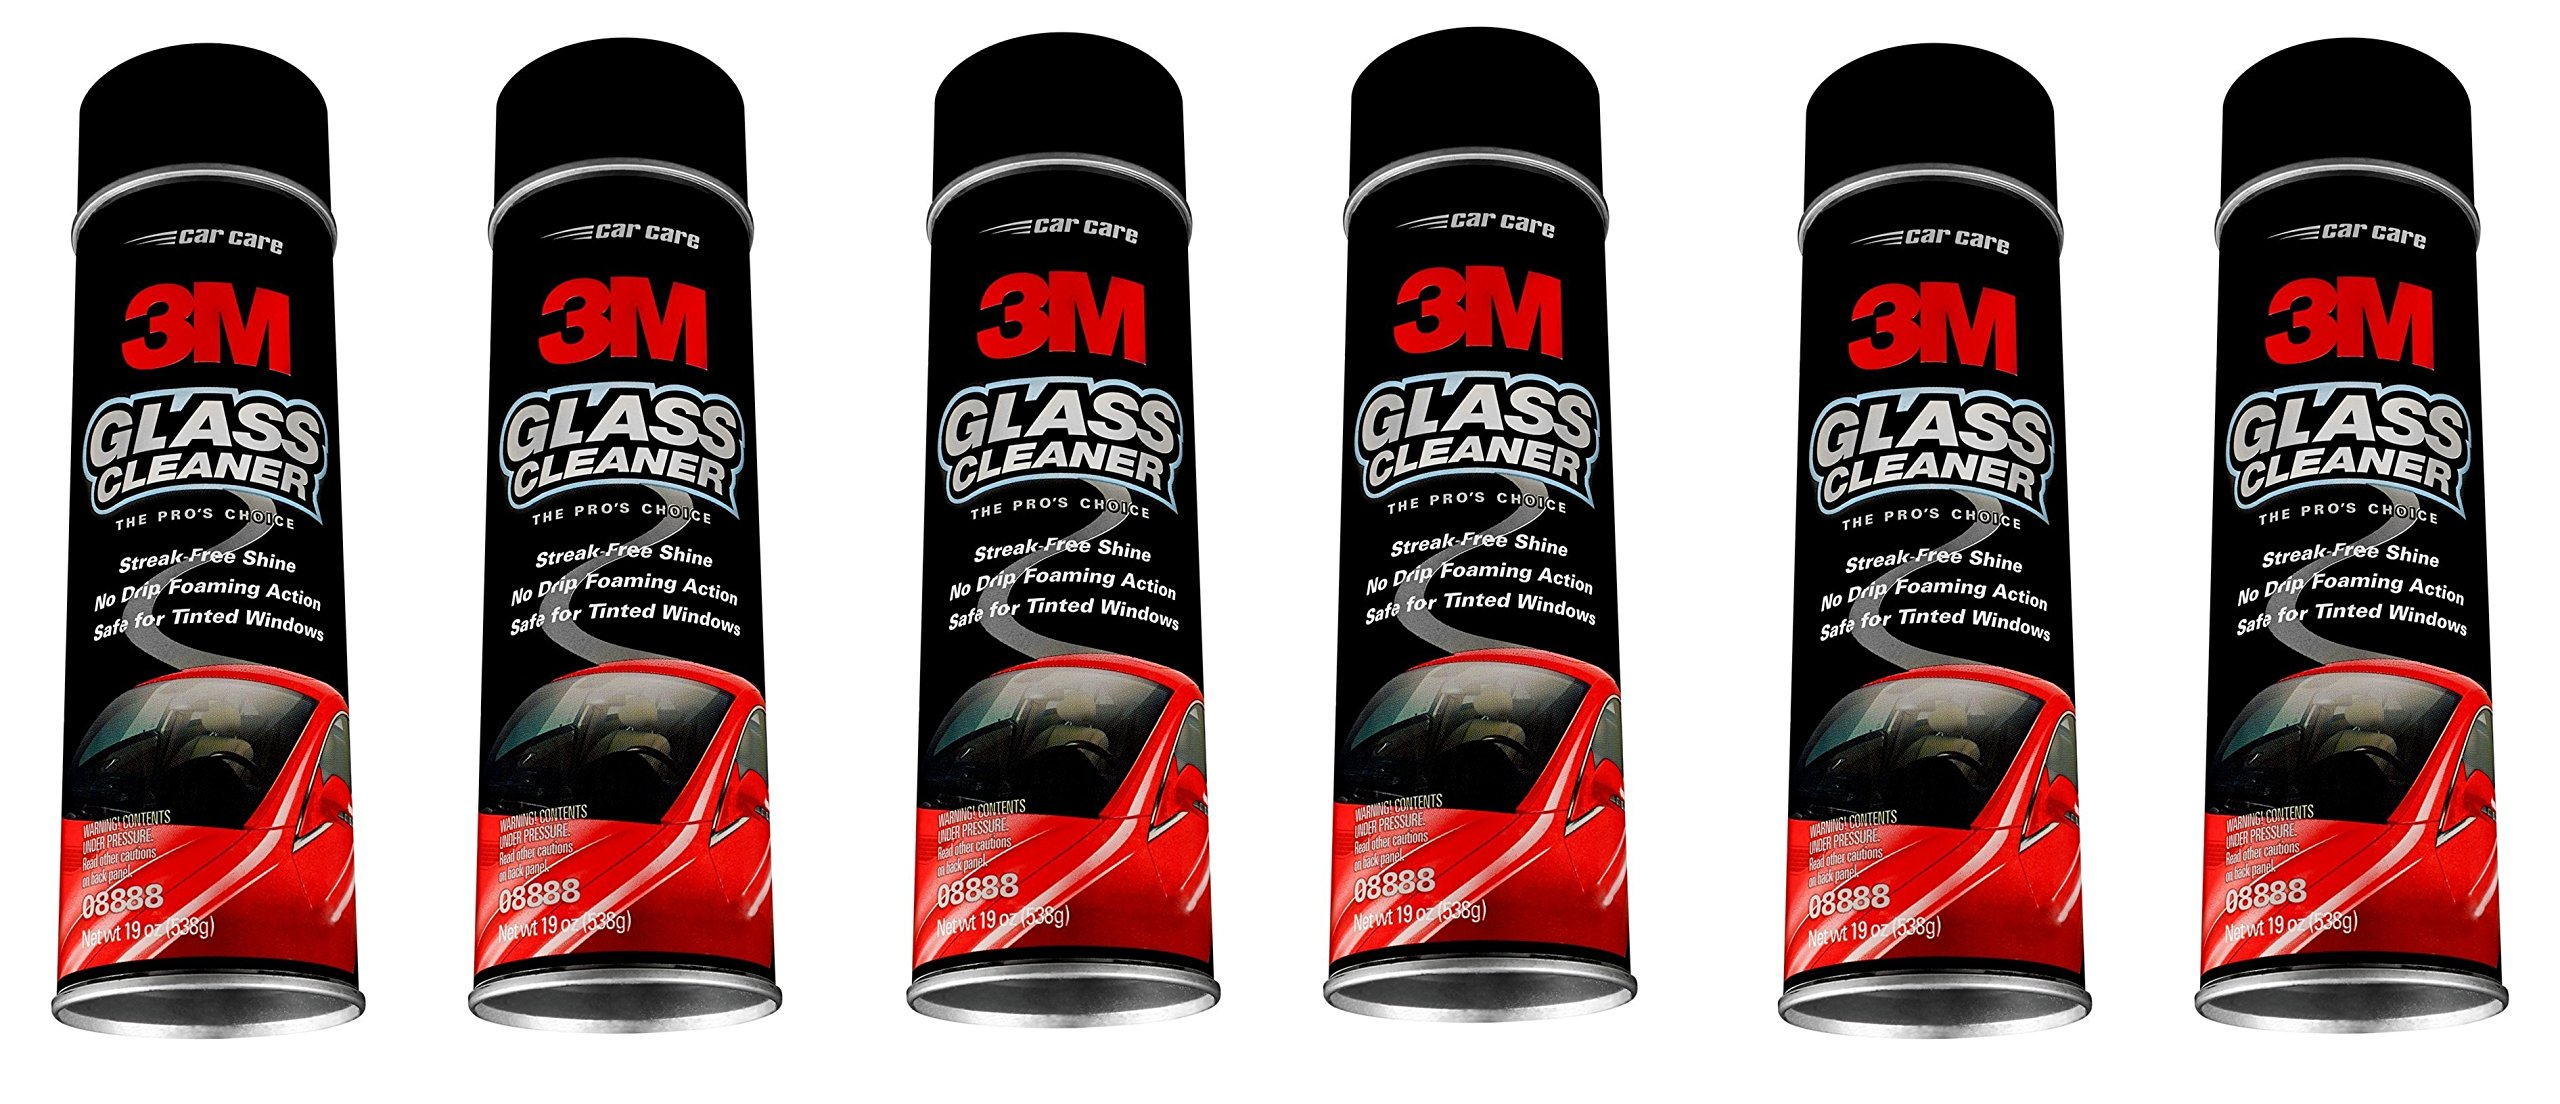 3M ® 08888 Glass Cleaner (6)